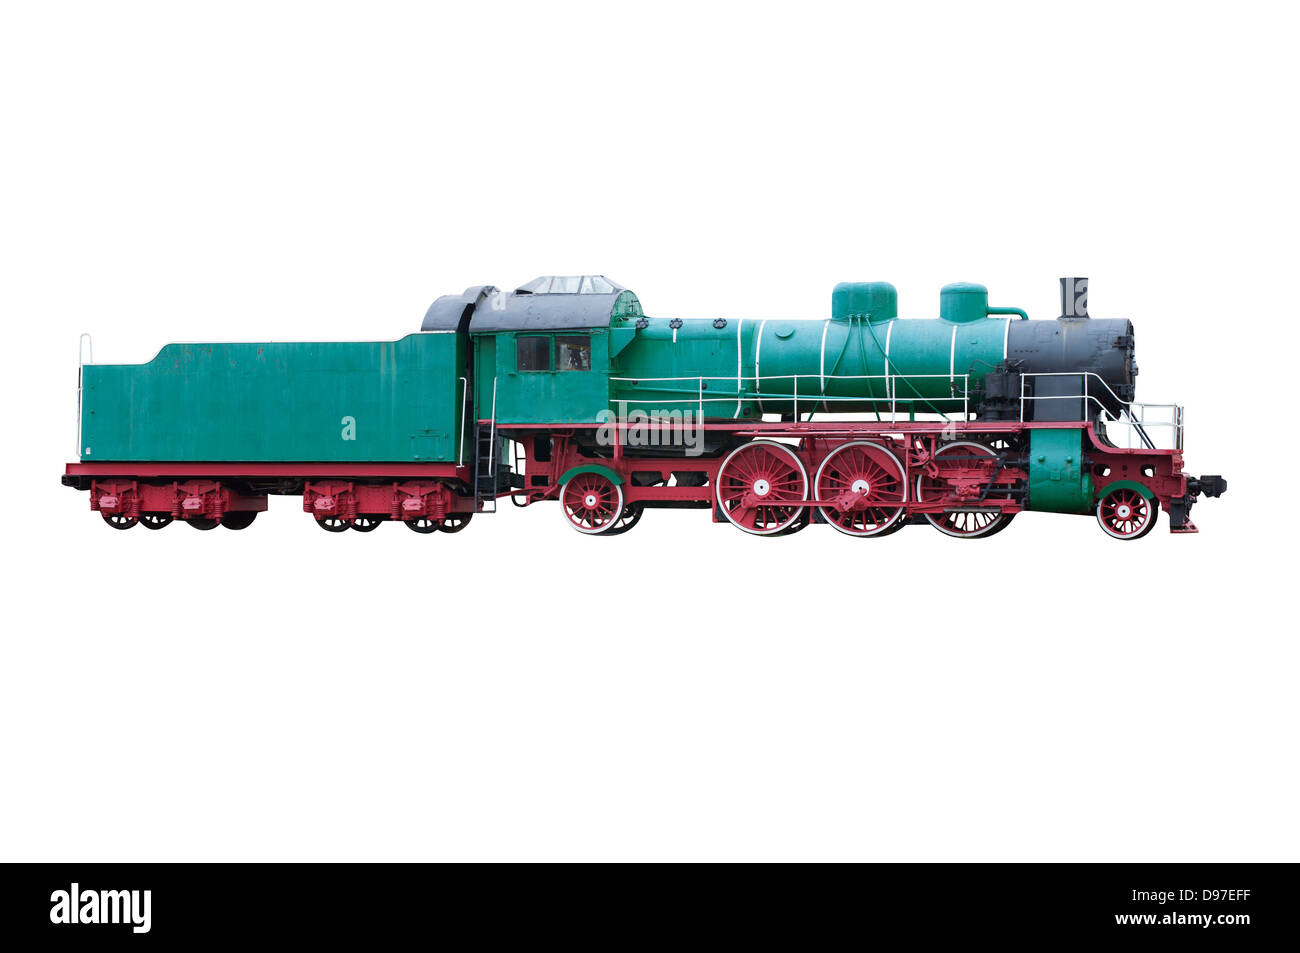 Old steam locomotive, side view (isolated) - Stock Image